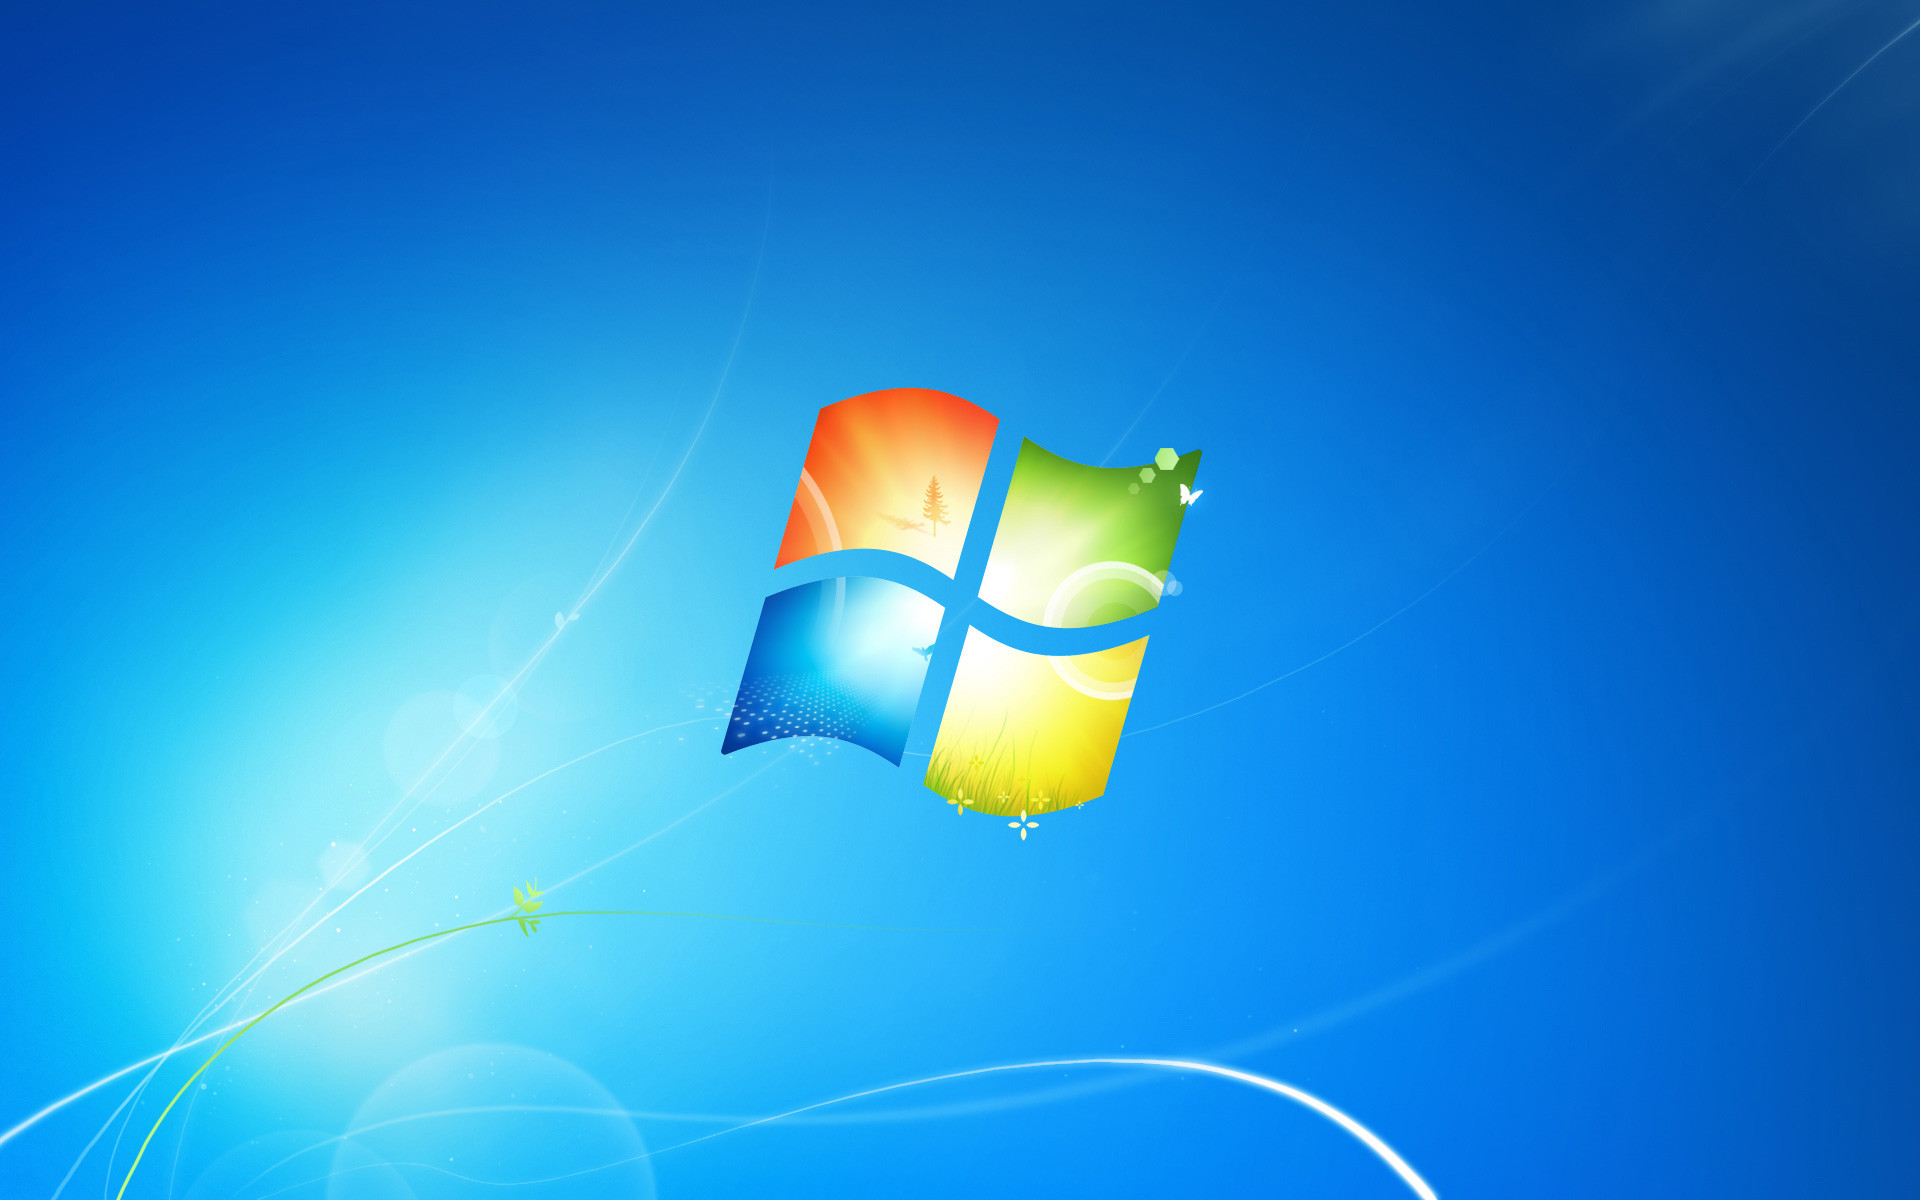 Old Windows Wallpapers (52+ images)